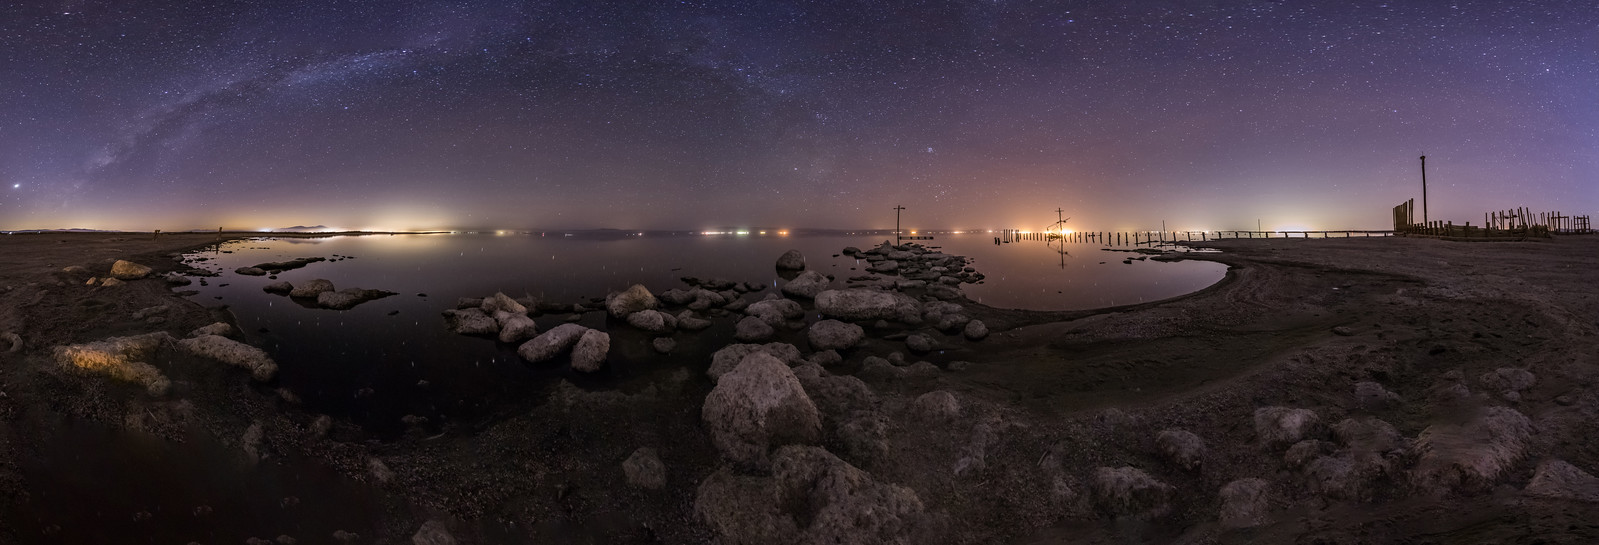 A Clear and Calm Night at the Salton Sea